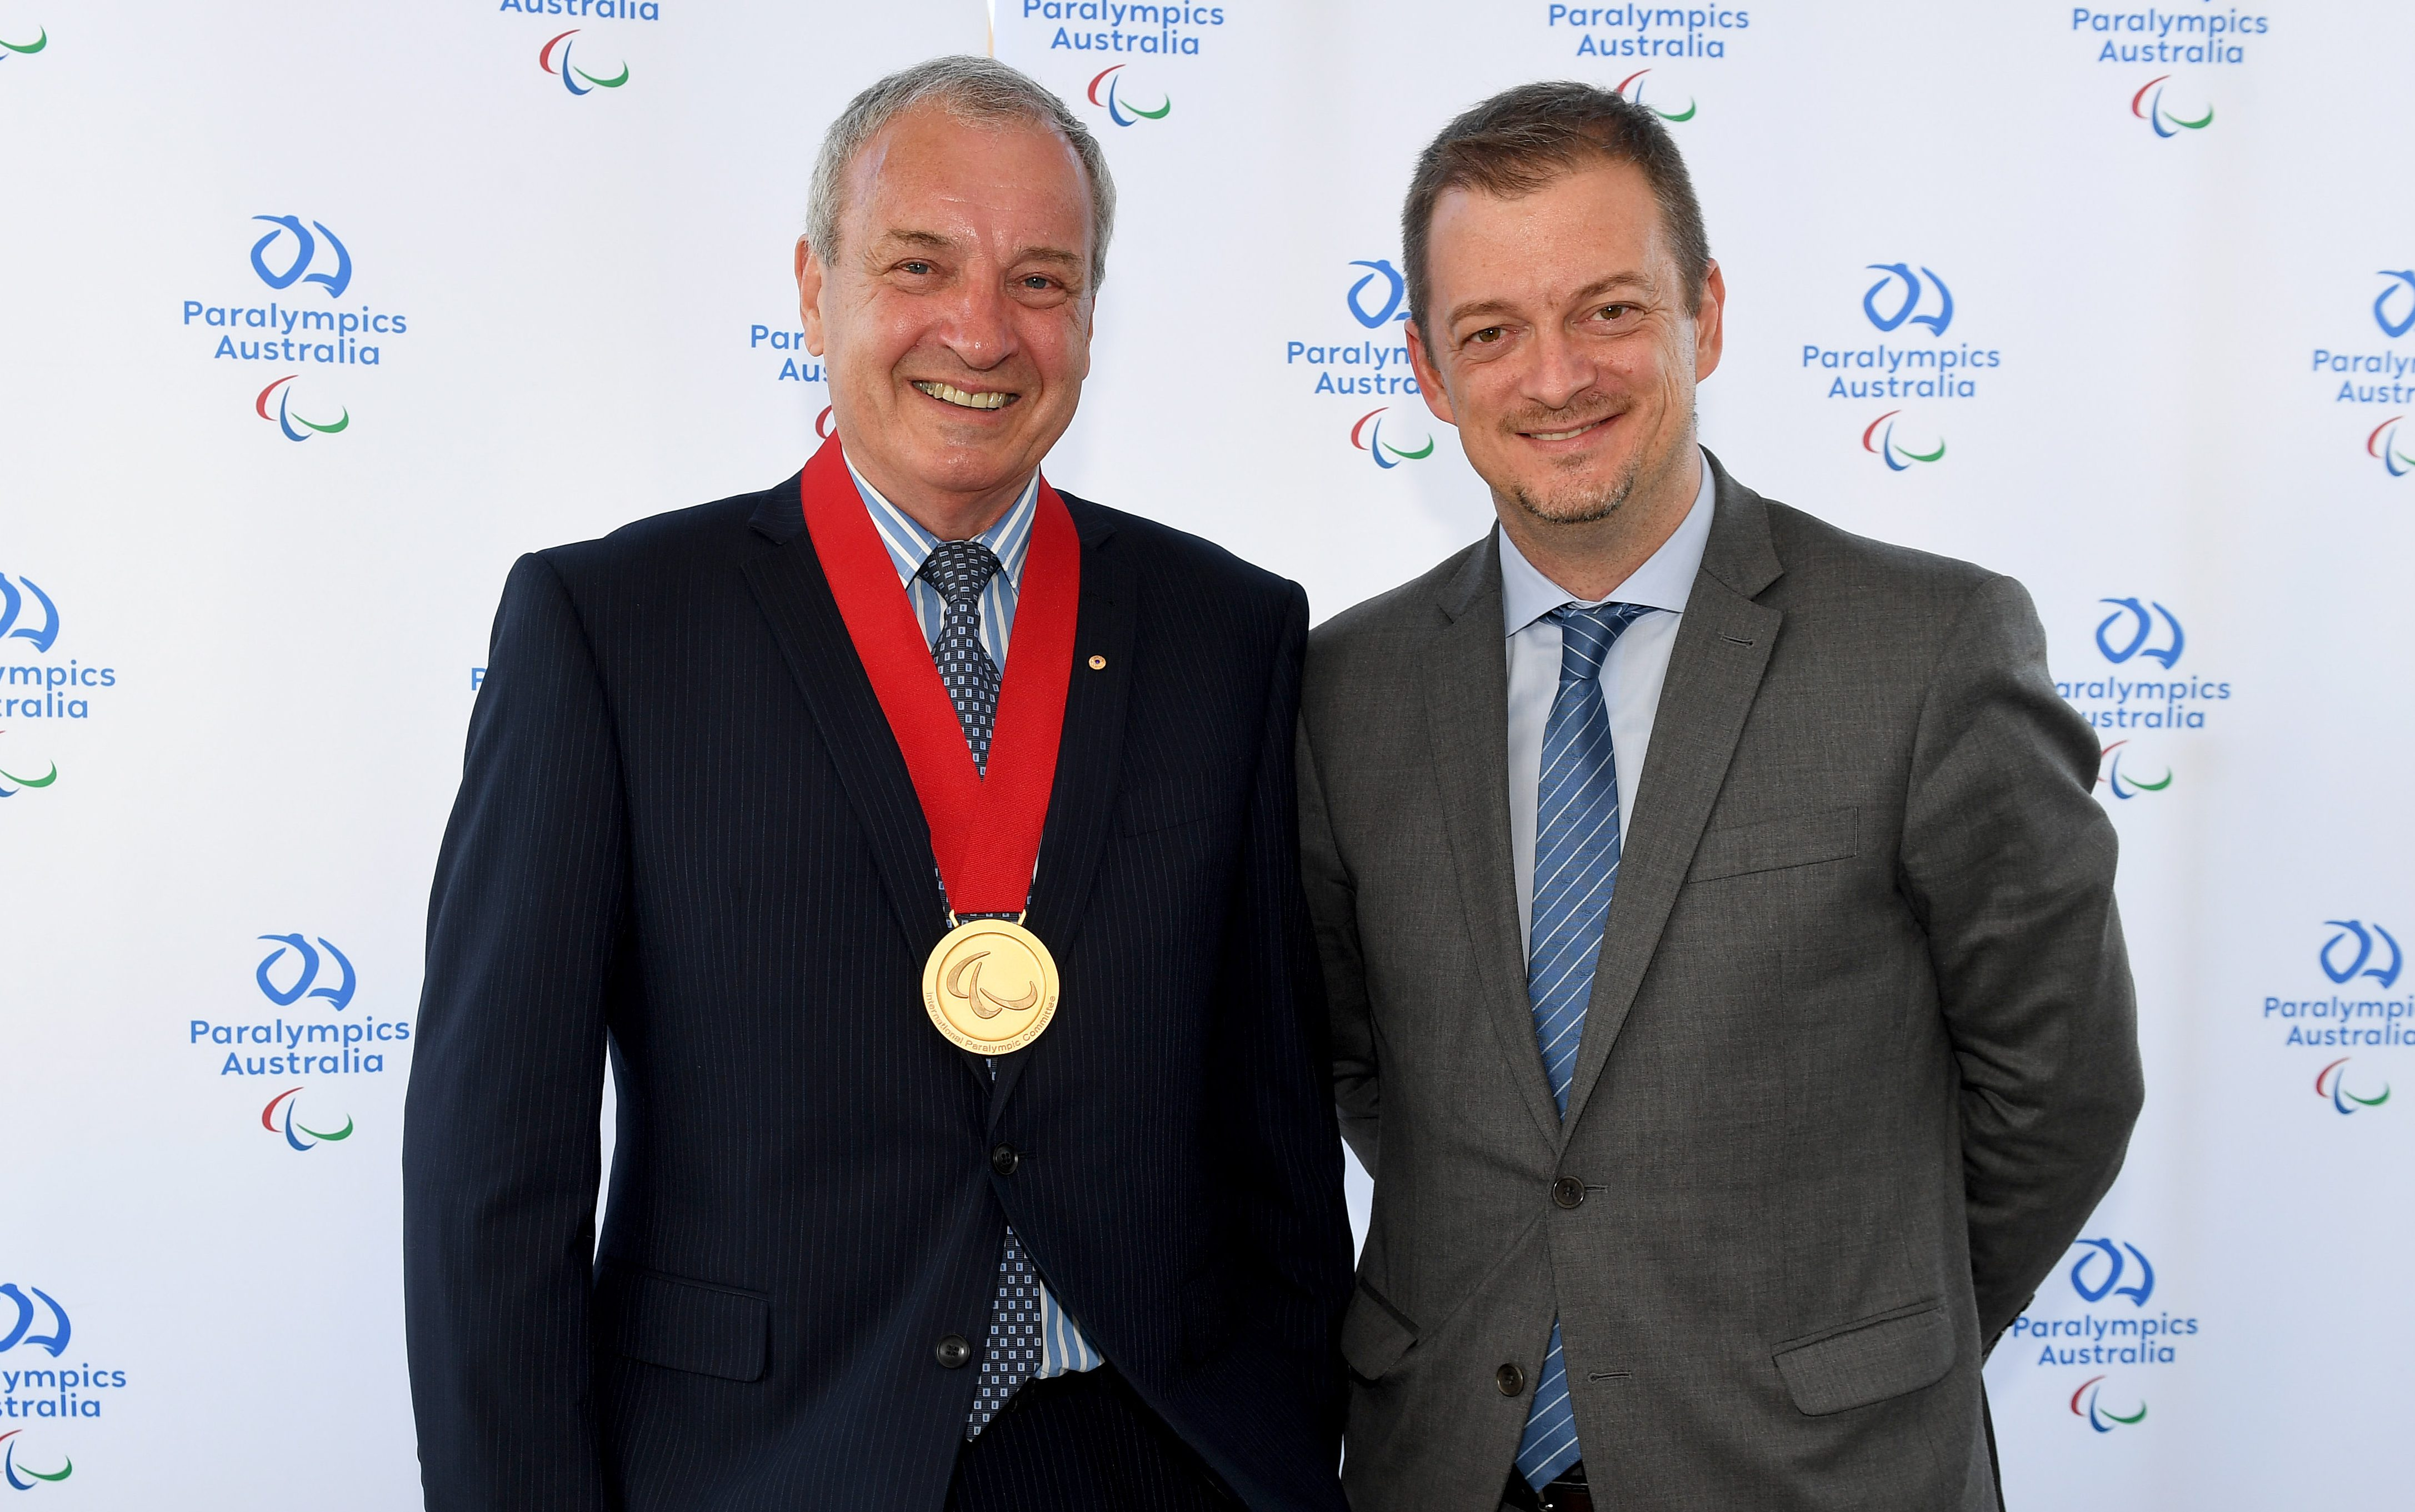 Hartung awarded top Paralympic honour